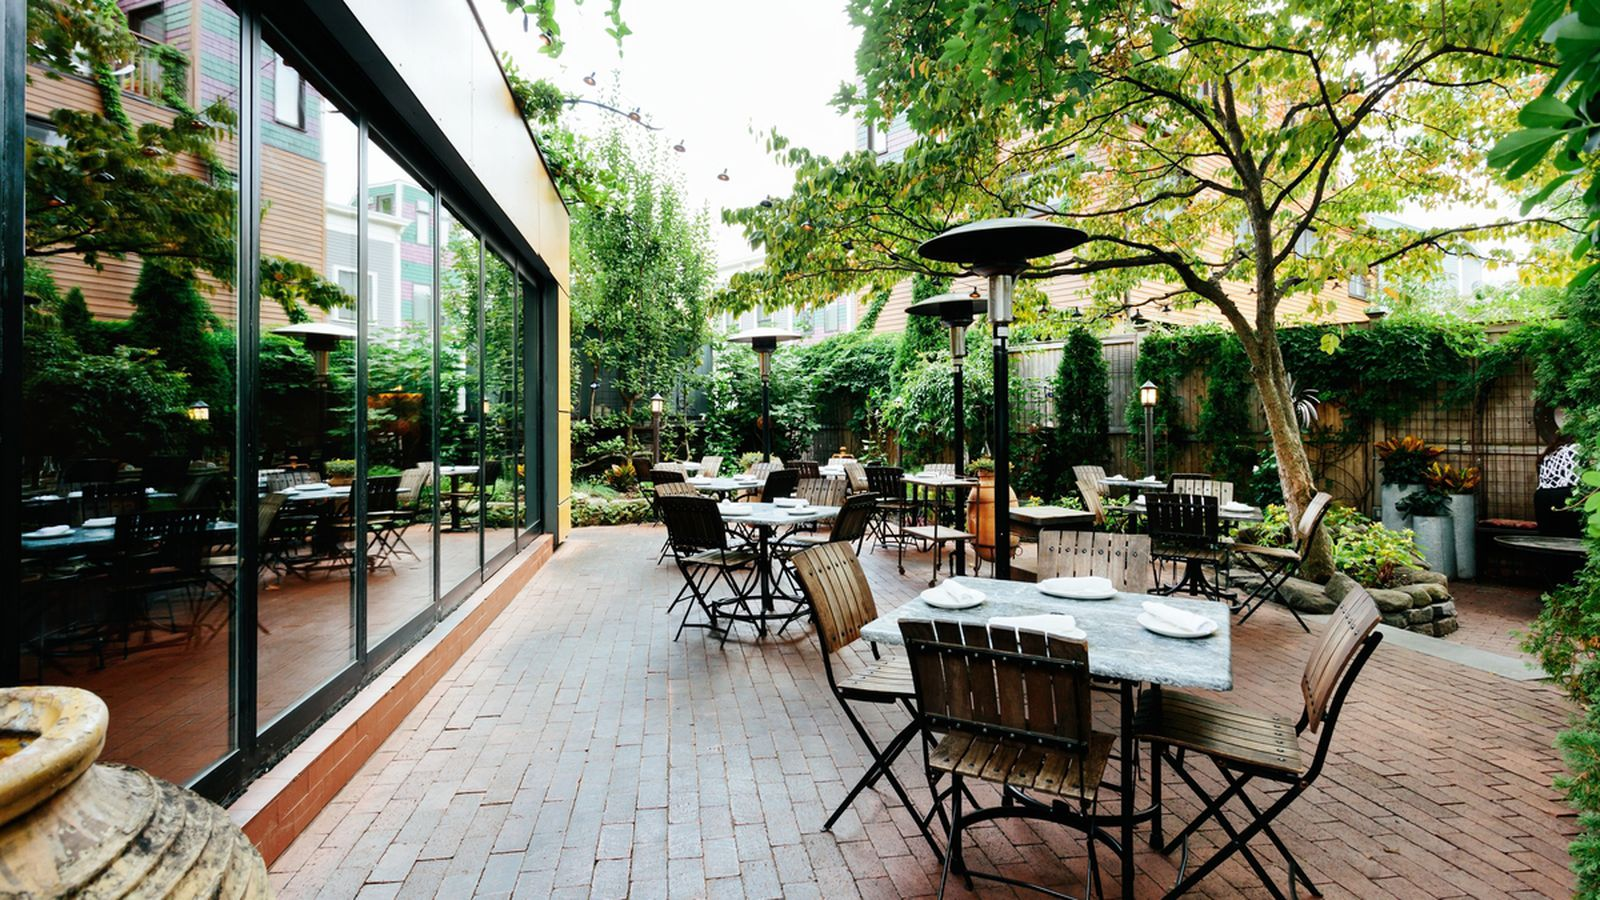 The boston outdoor dining guide eater boston for Restaurants with outdoor seating